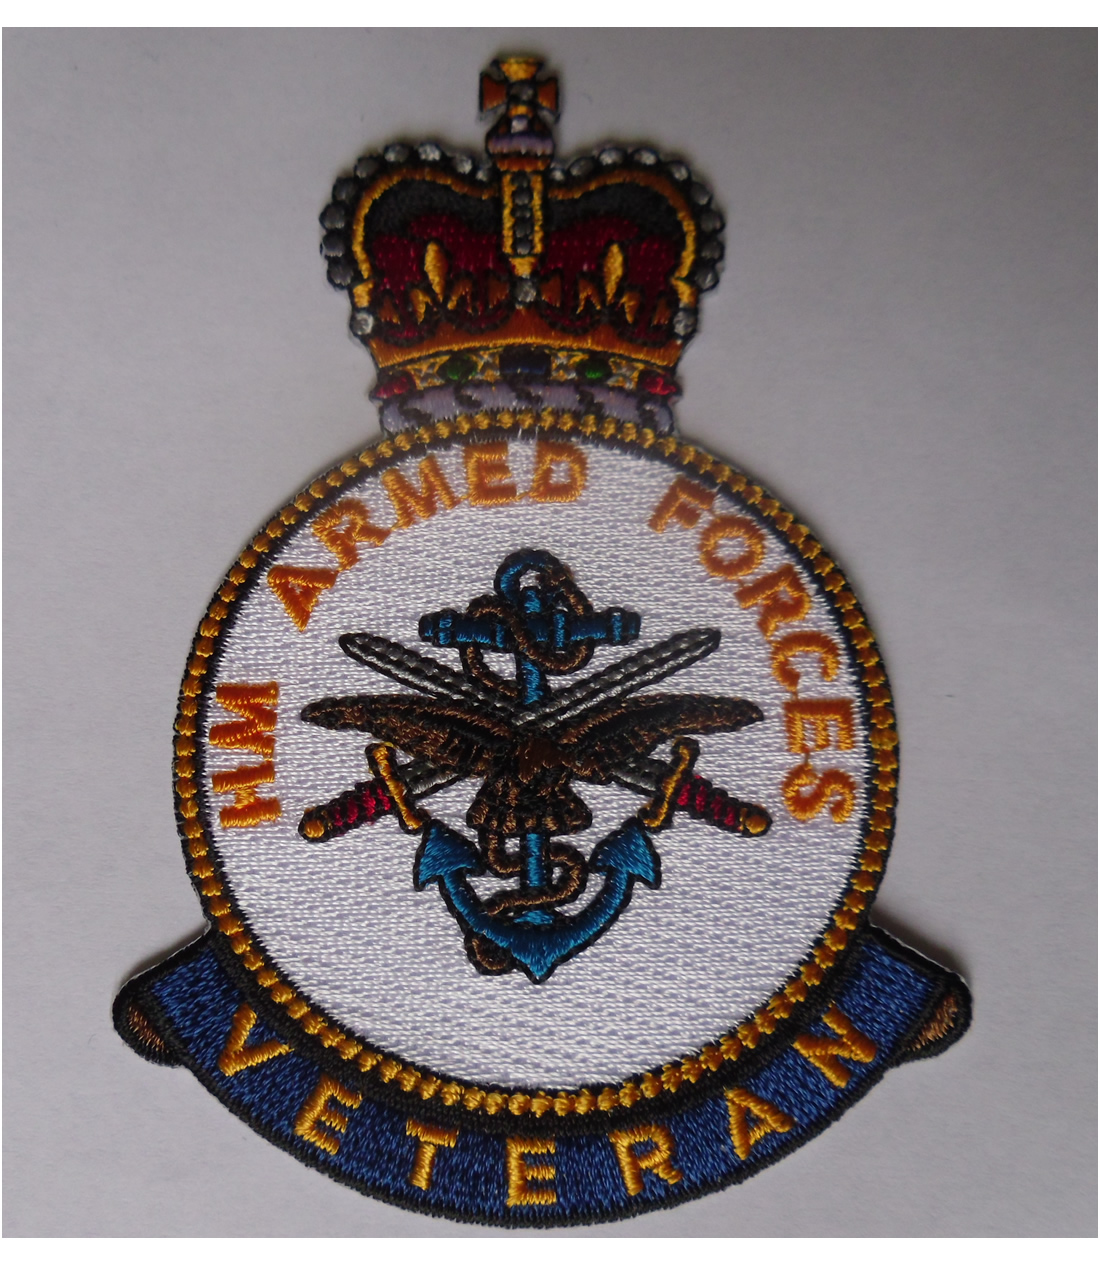 HM Armed Forces Veteran iron on embroidered patch